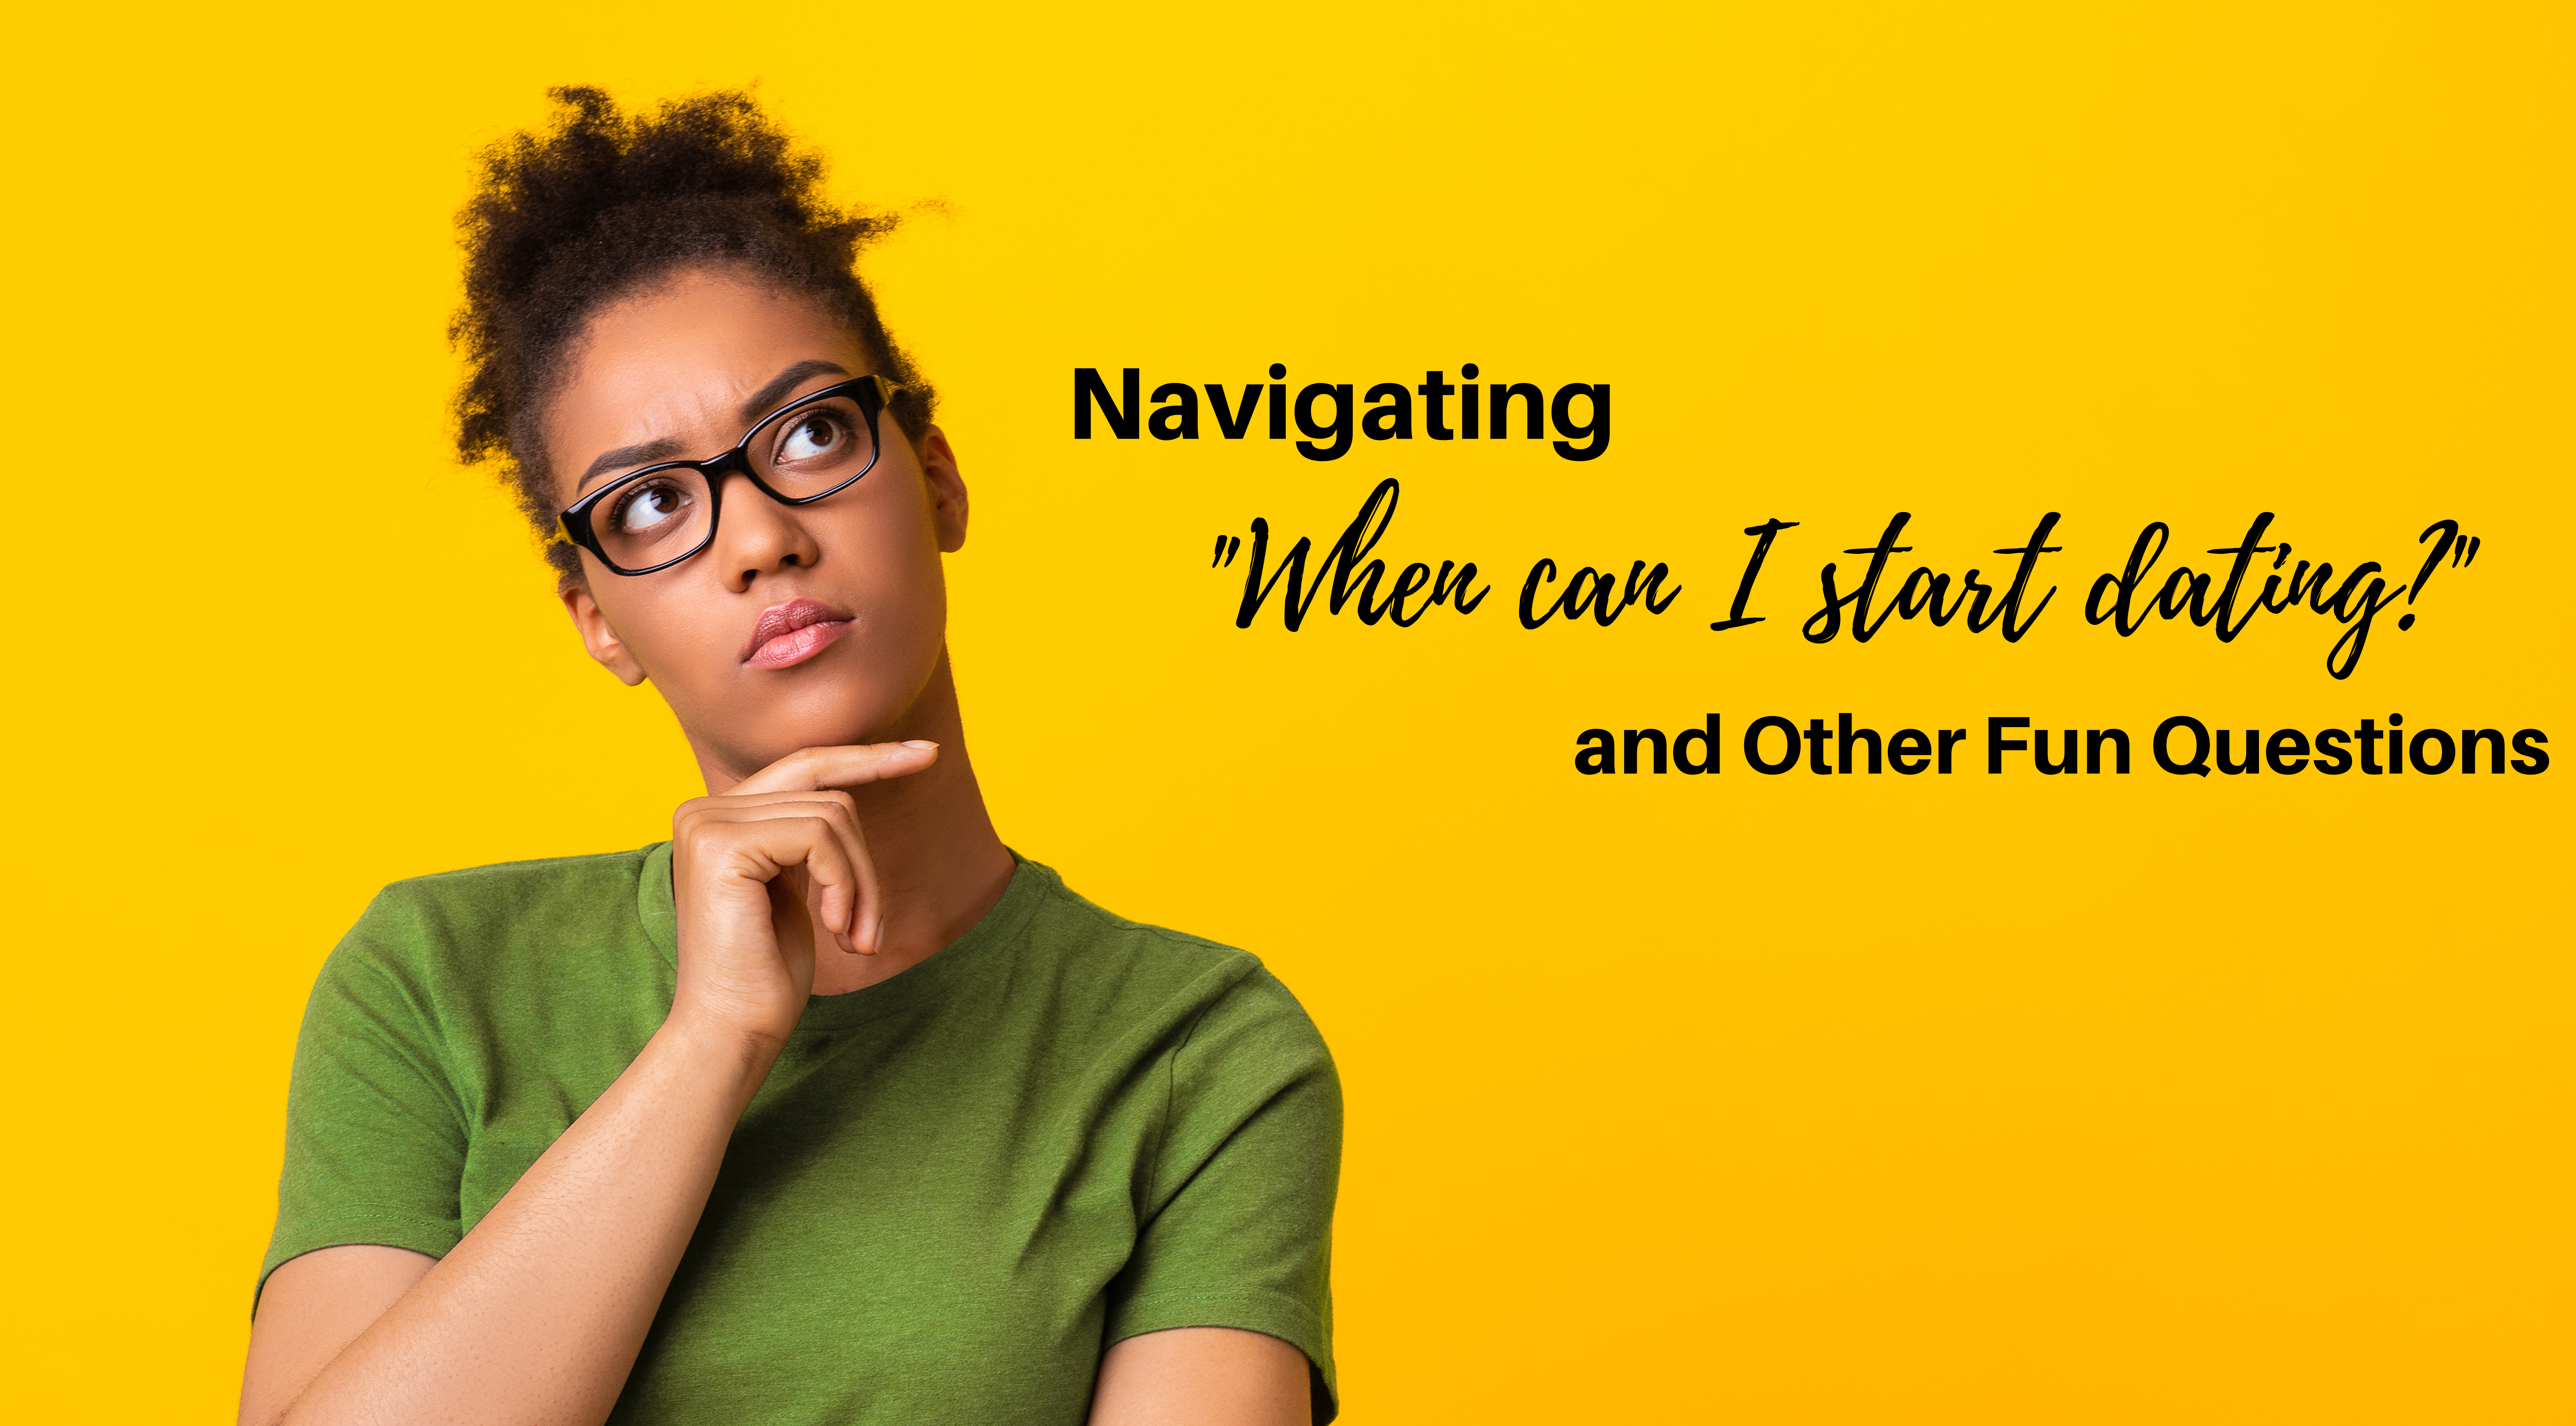 """Navigating """"When can I start dating?"""" and Other Fun Questions"""